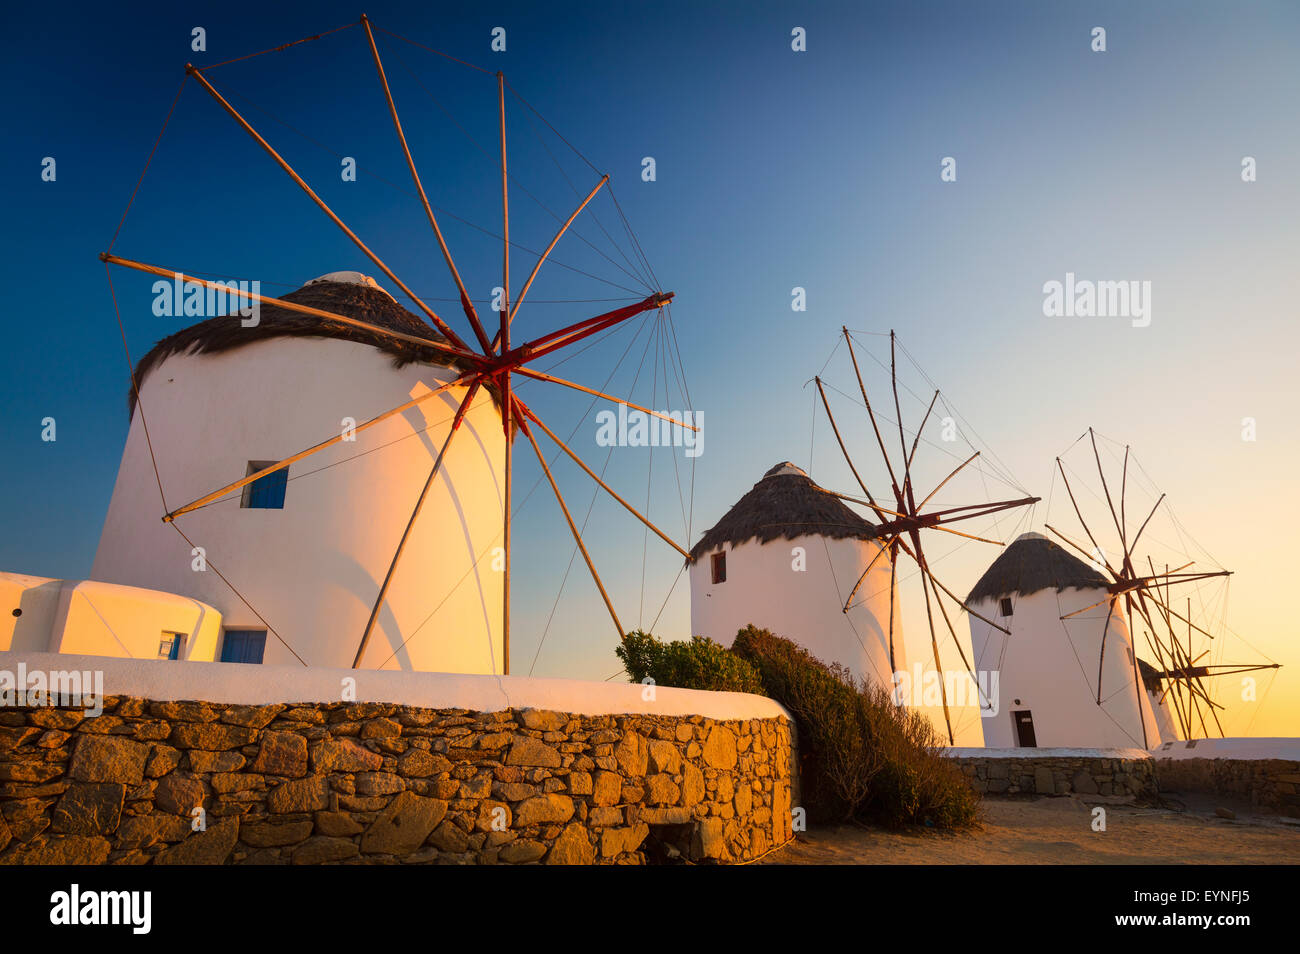 Mykonos windmills - The windmills are a defining feature of the Mykonian landscape. Stock Photo